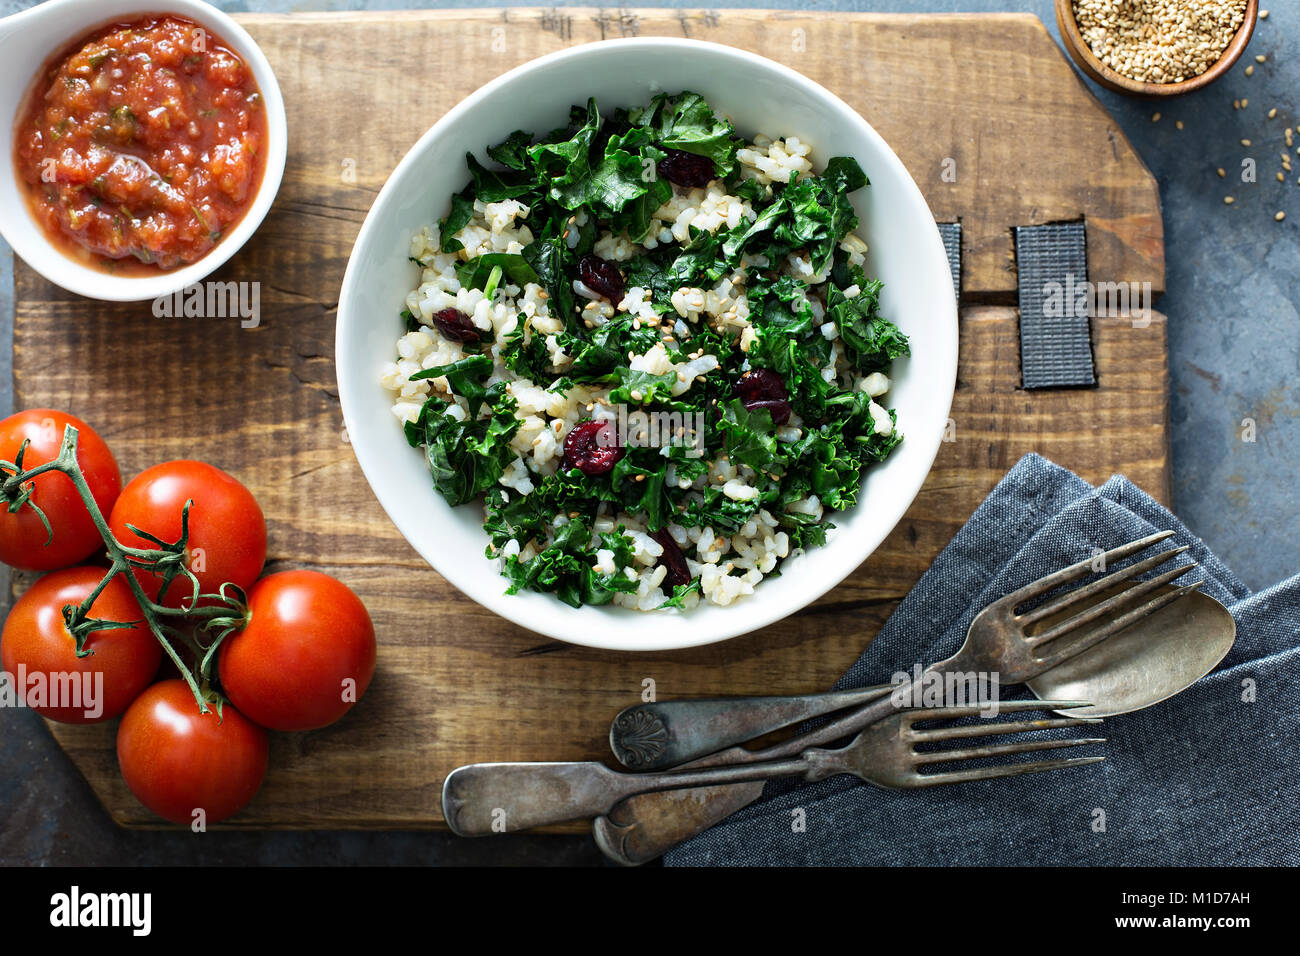 Warm kale salad with brown rice and cranberry - Stock Image